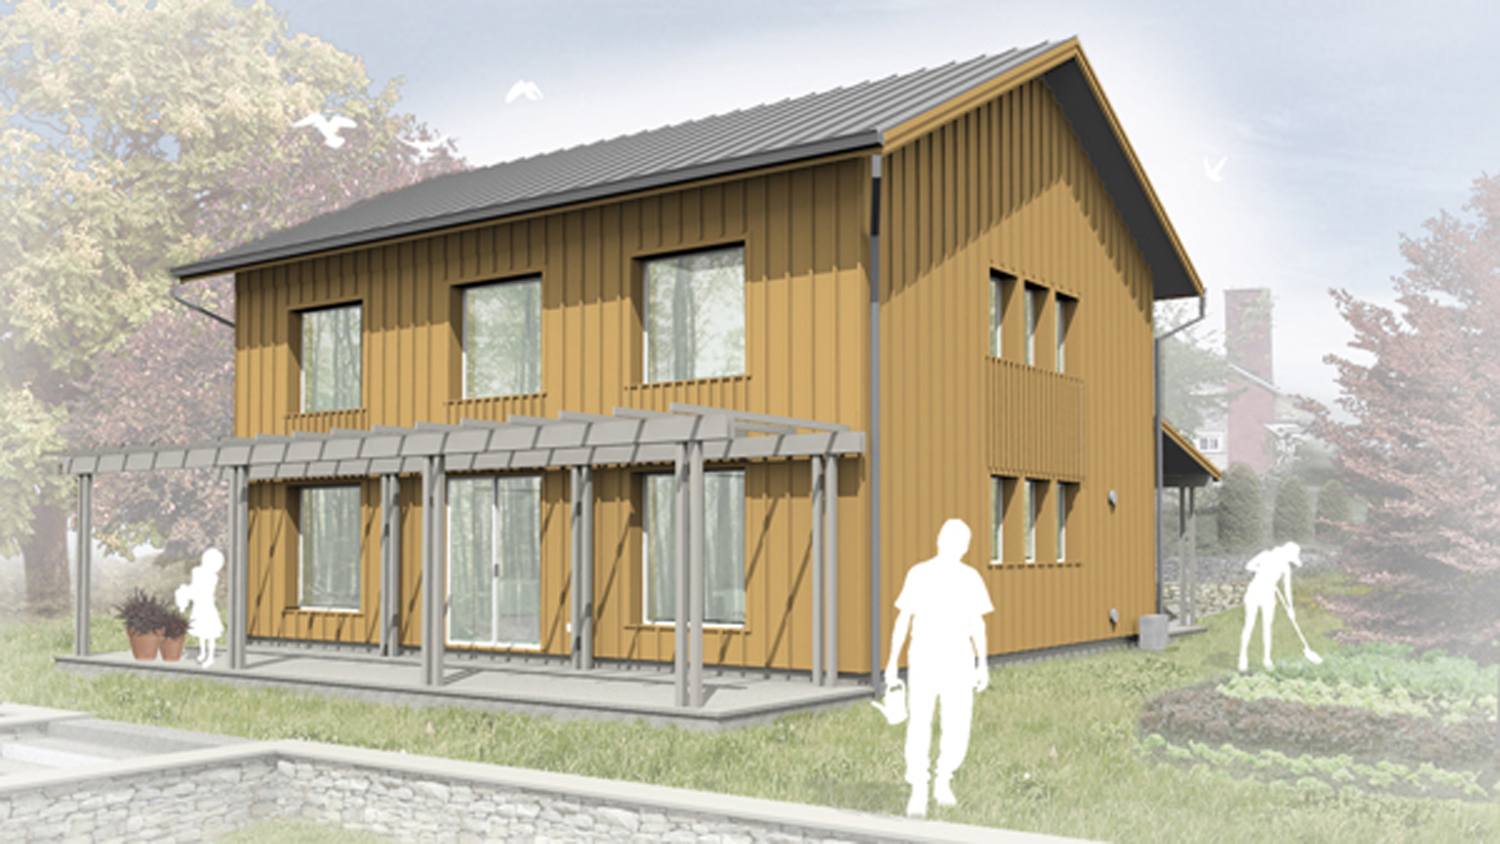 RPA's Scranton Passive House Certified by Passive House Institute US (PHIUS)